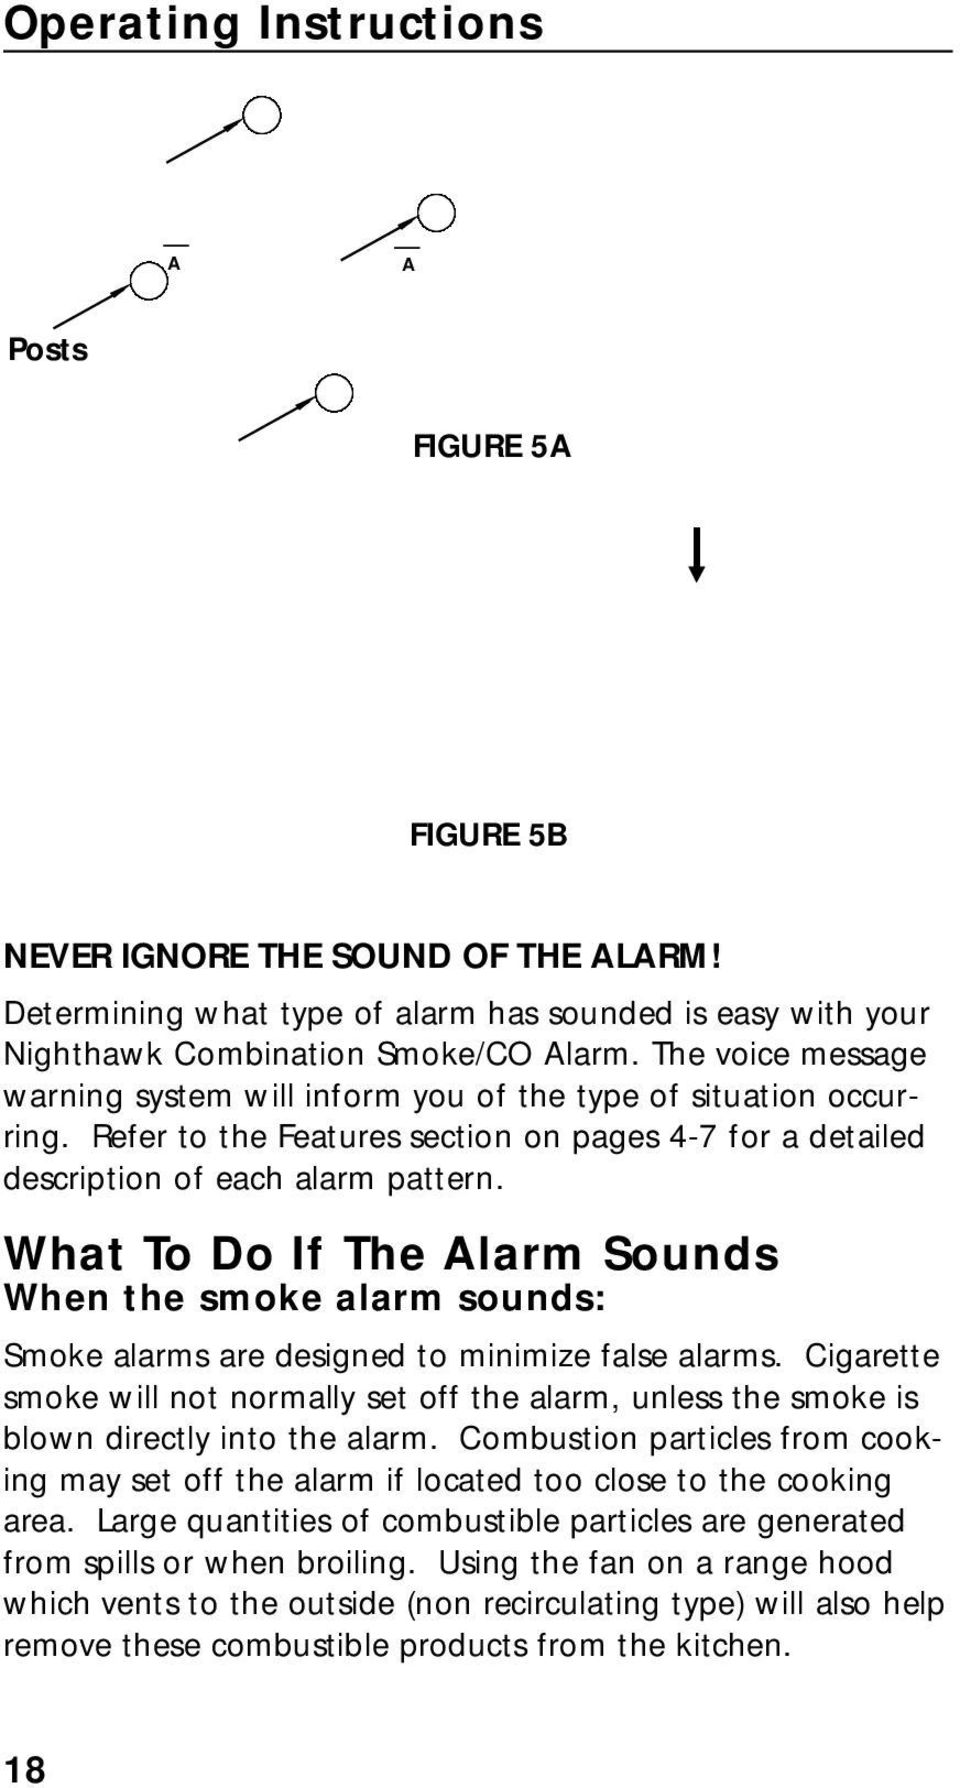 What To Do If The Alarm Sounds When the smoke alarm sounds: Smoke alarms are designed to minimize false alarms.